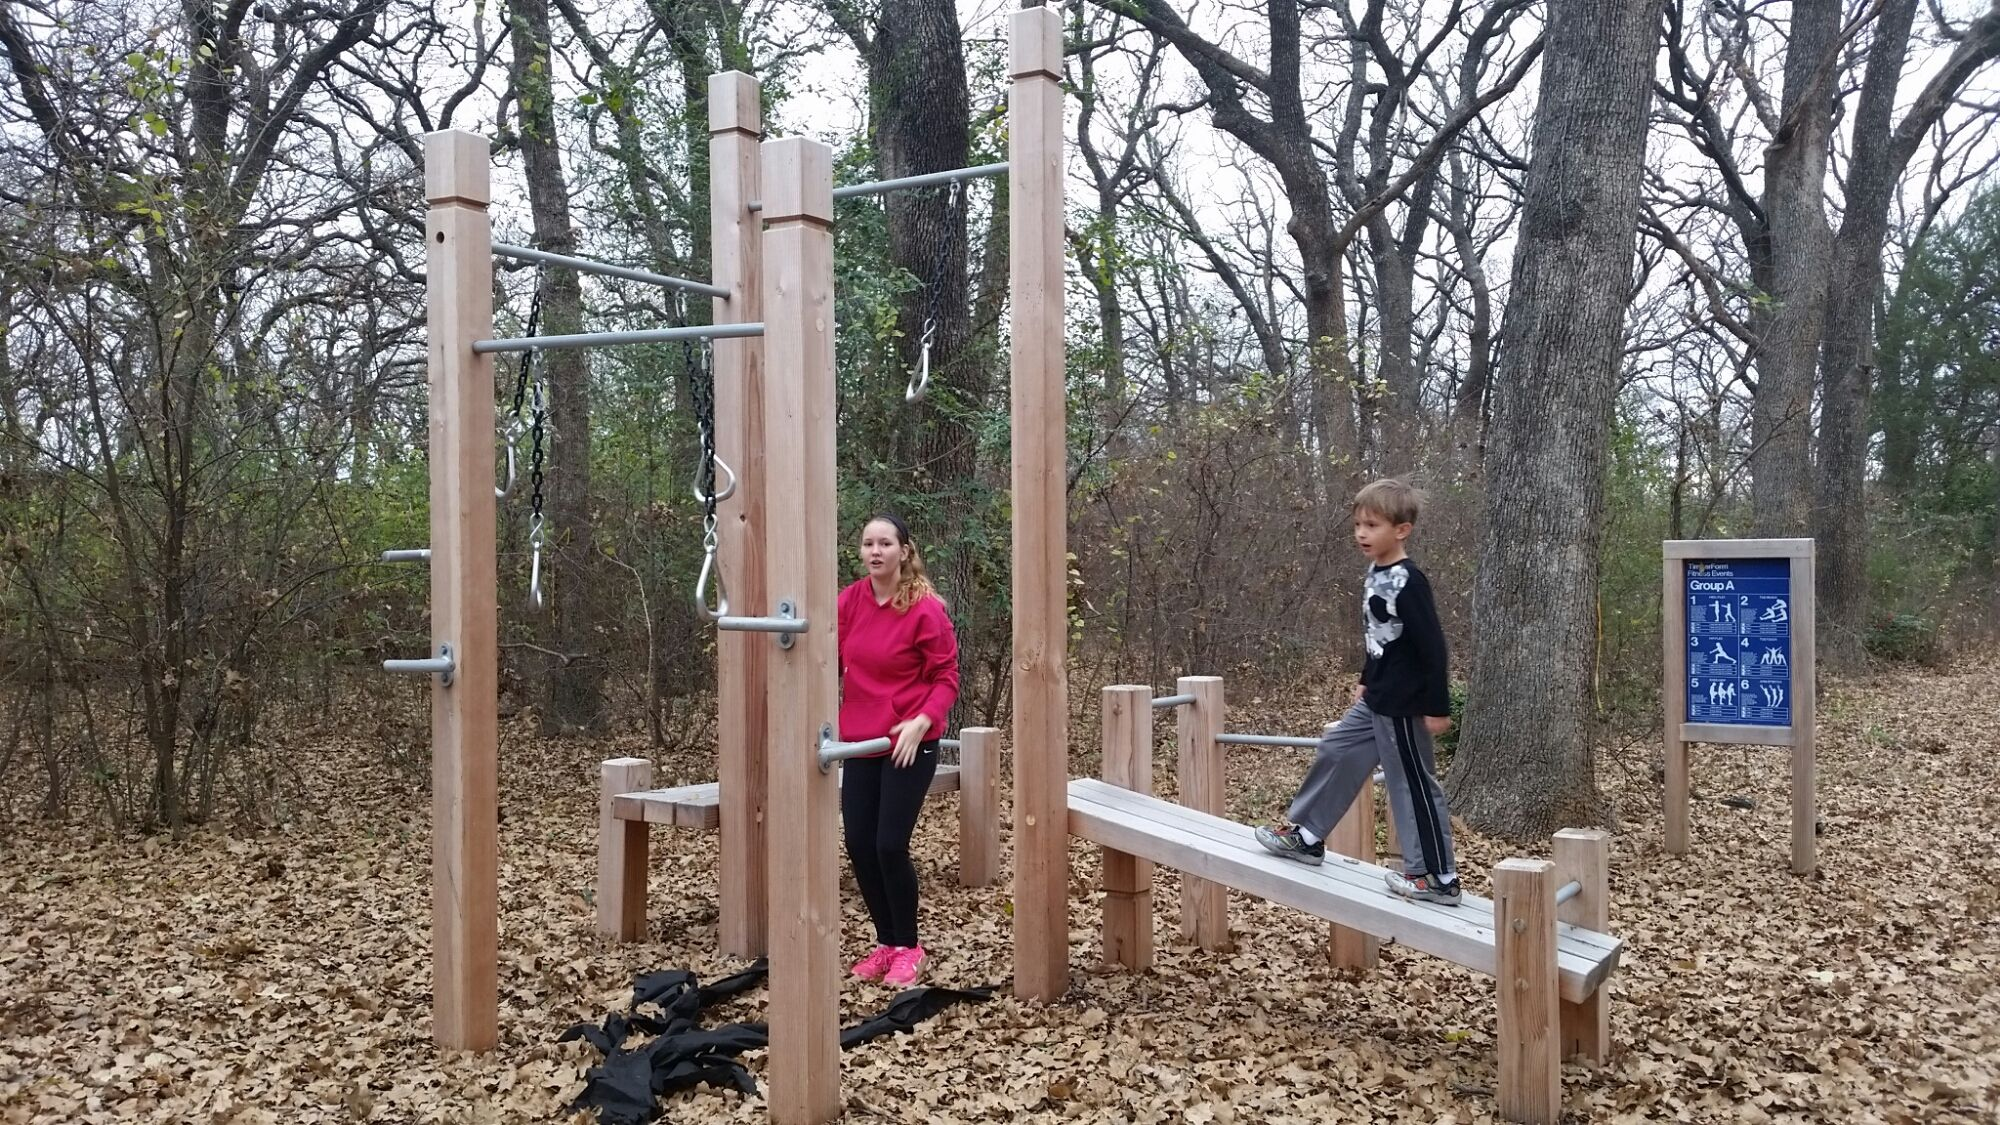 Pin By Philip Harrison On Timberland Fitness Signs Fitness Trail Play Structure Outdoor Fun